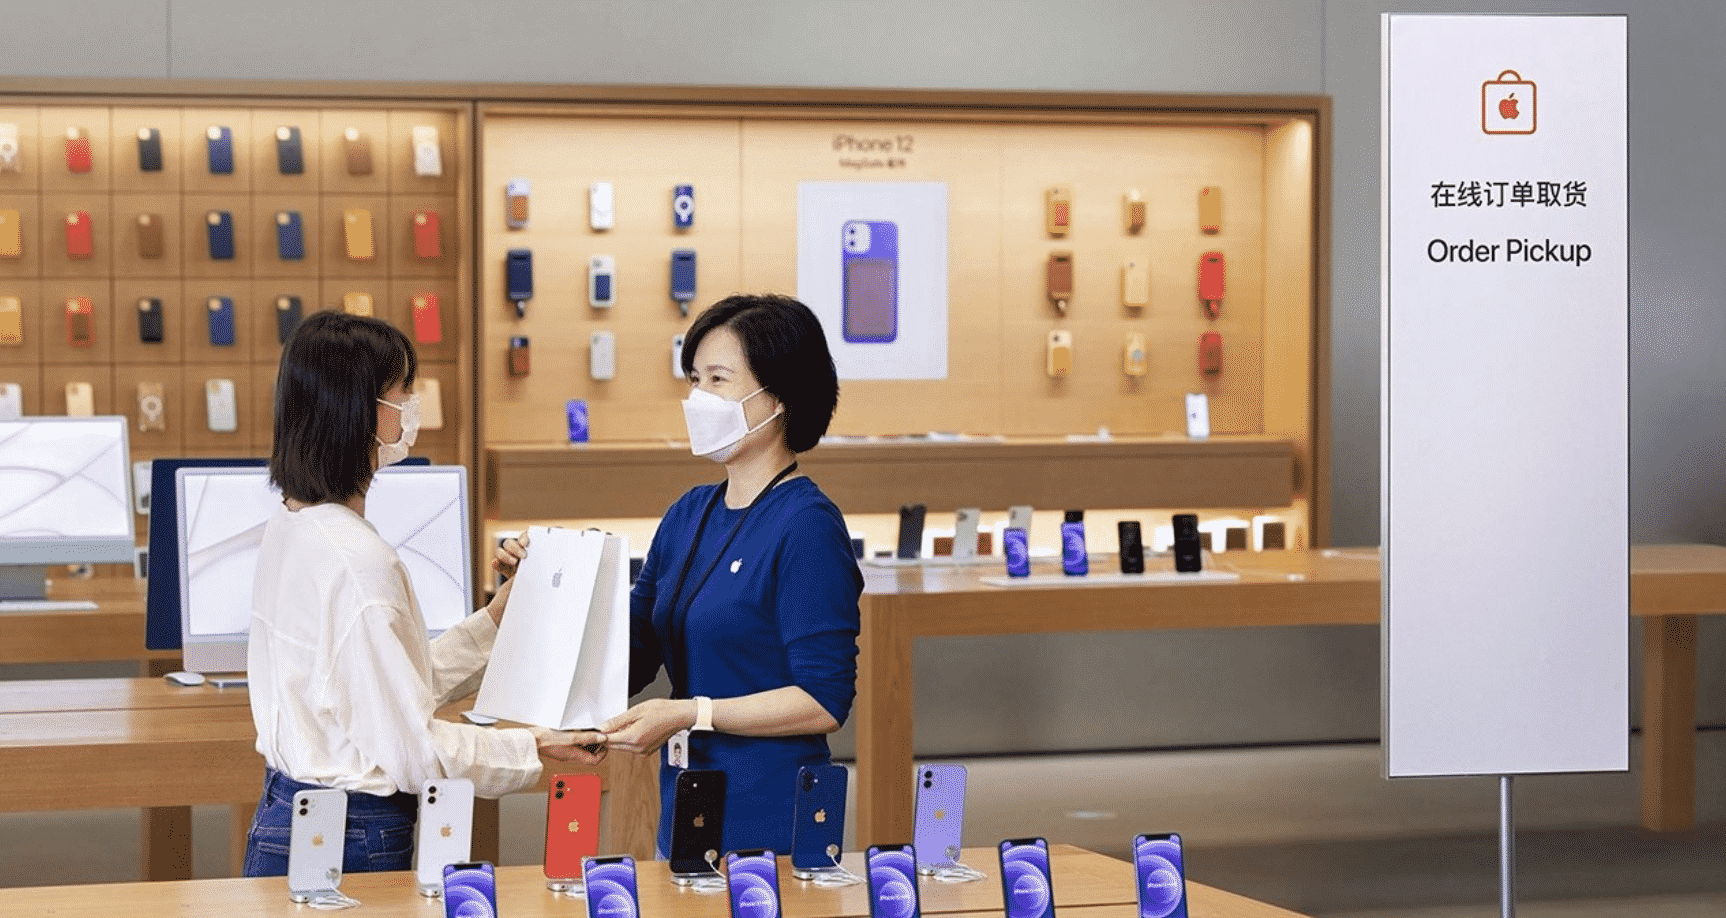 Apple Stores in mainland China Open In-Store pickup option